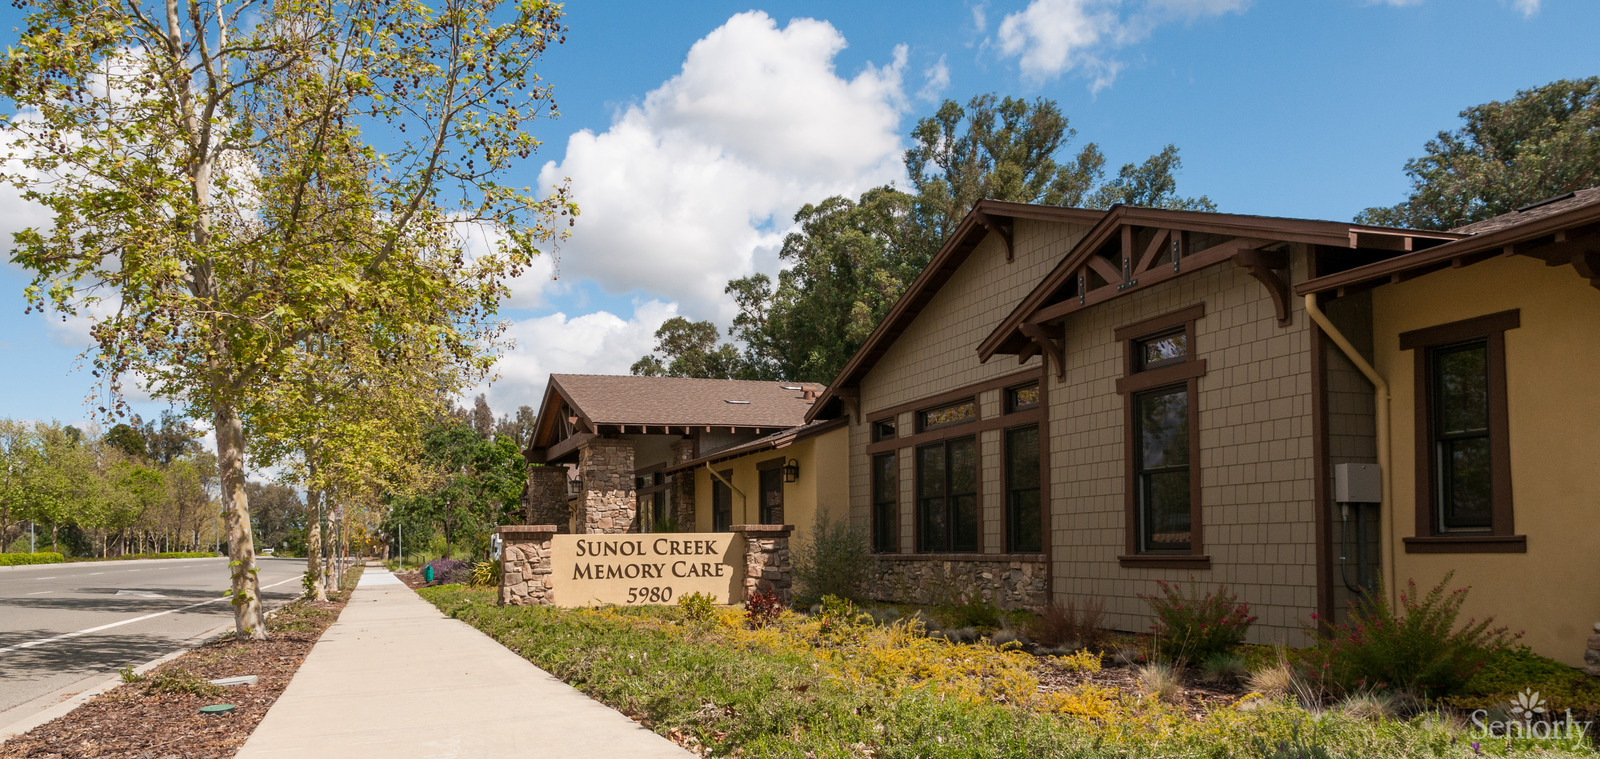 Sunol Creek Memory Care 7